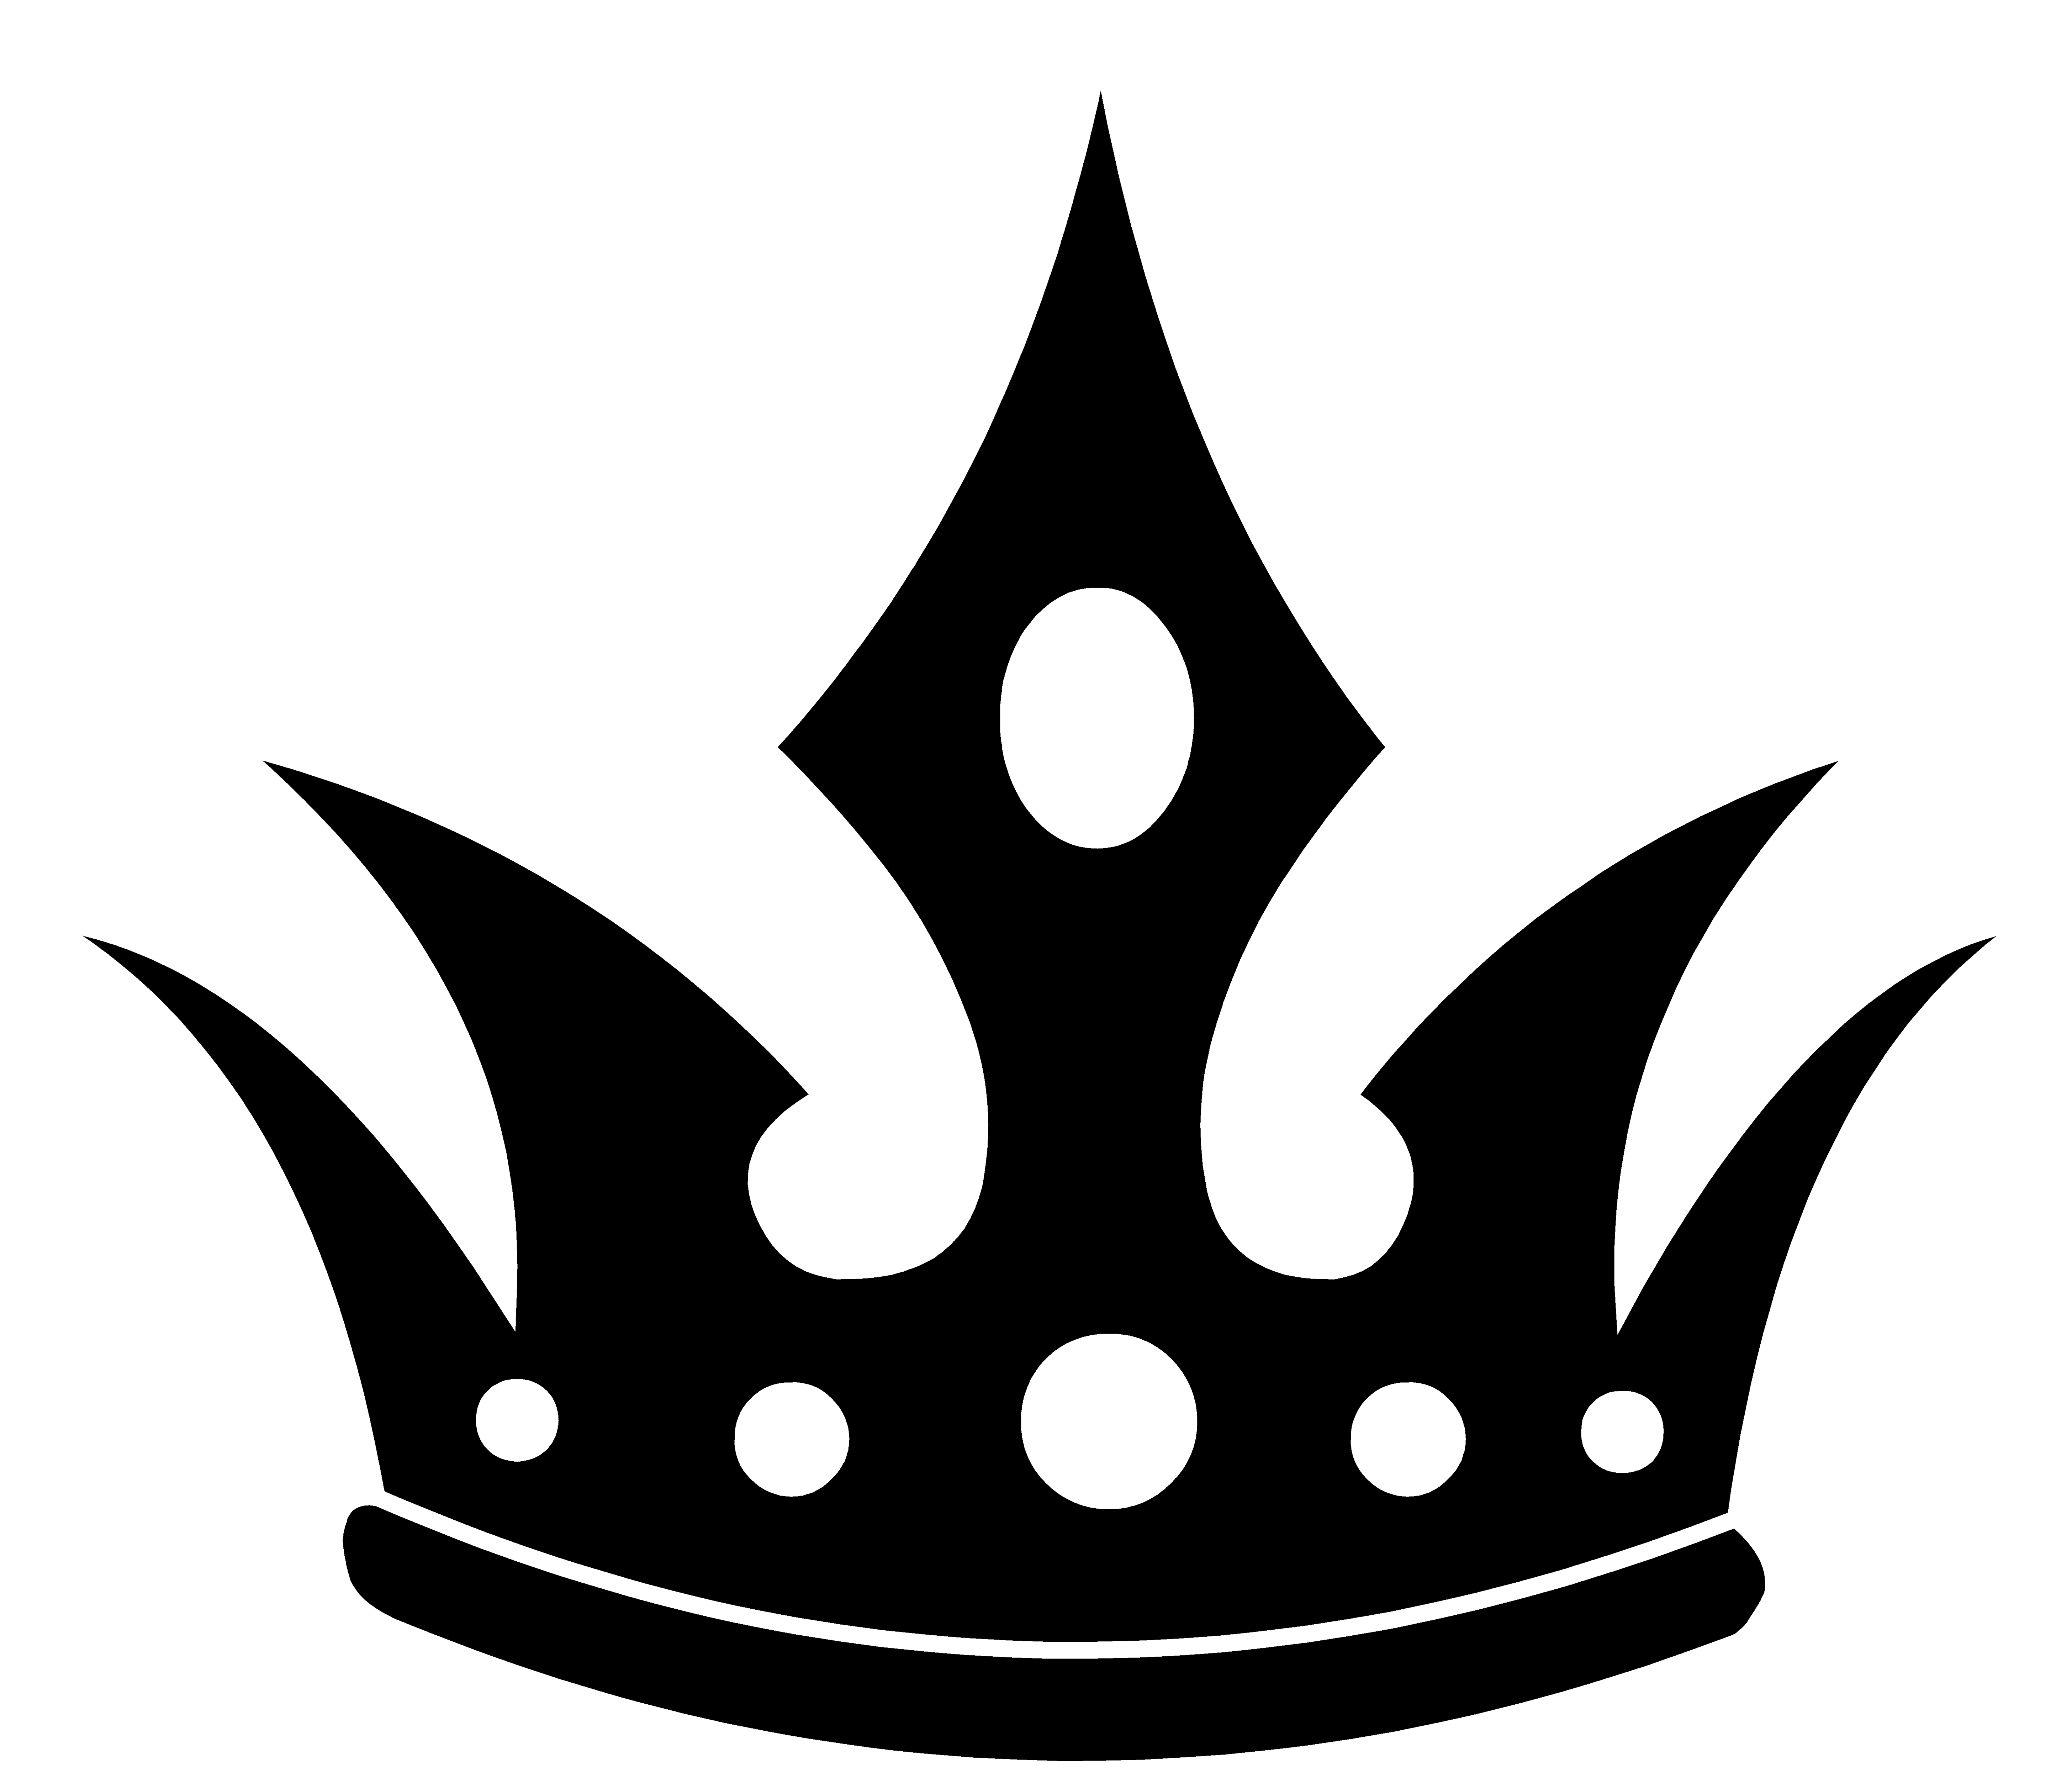 Crown the empire logo clipart clip freeuse download King Crown Logo Icon #336737 - Free Icons Library clip freeuse download